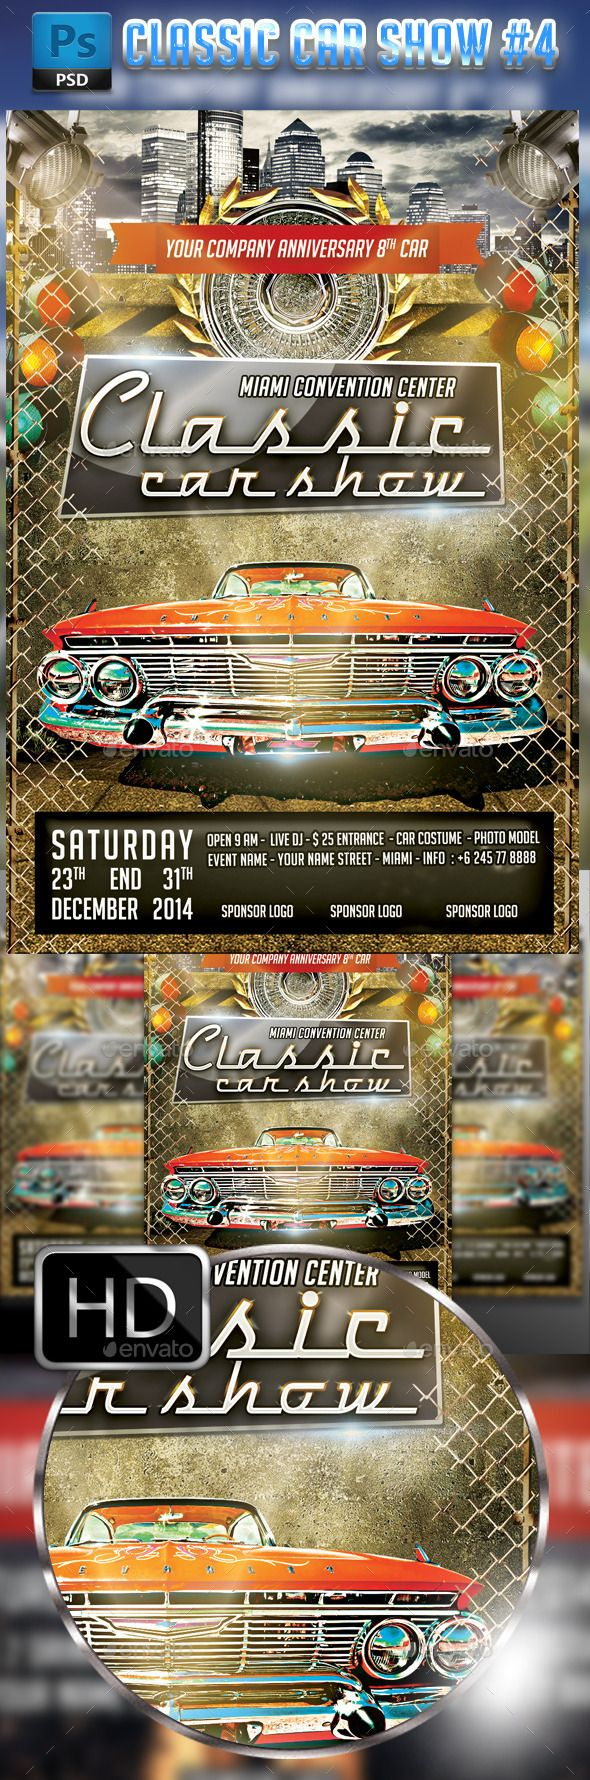 Car And Bike Show Flyer Template APPLESTORY - Car and bike show flyer template